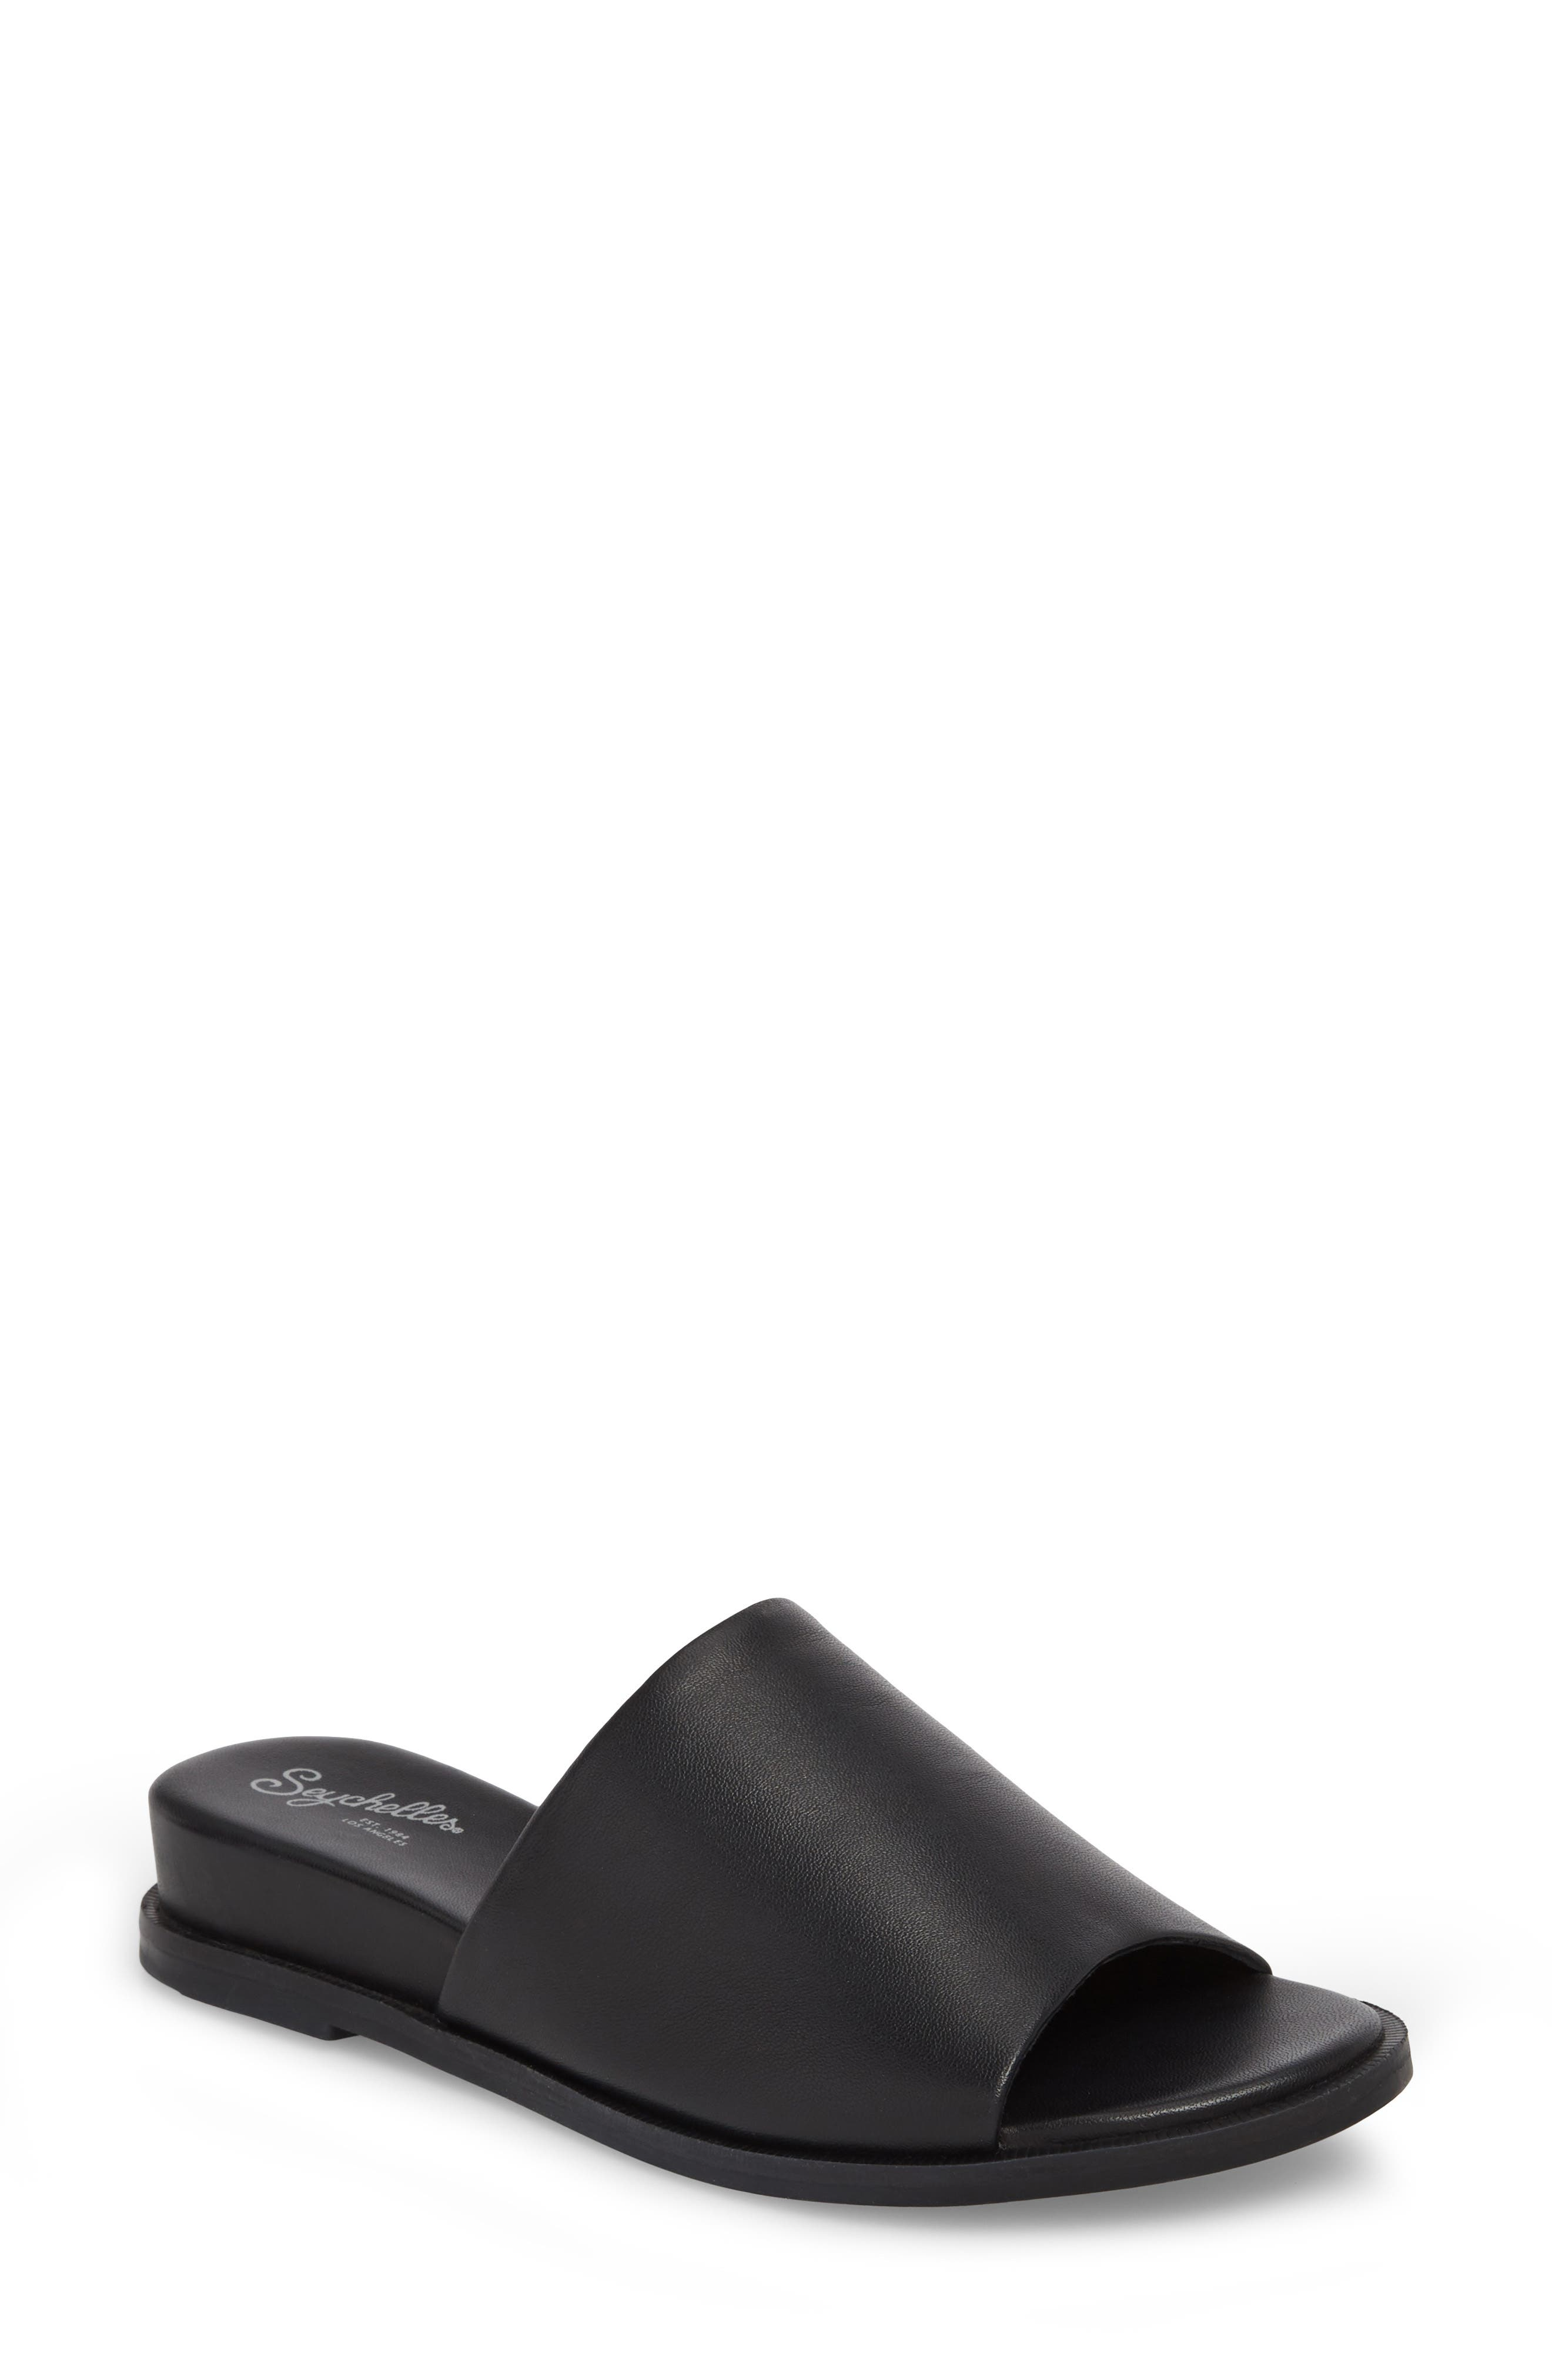 Relaxing Wedge Slide Sandal,                             Main thumbnail 1, color,                             001